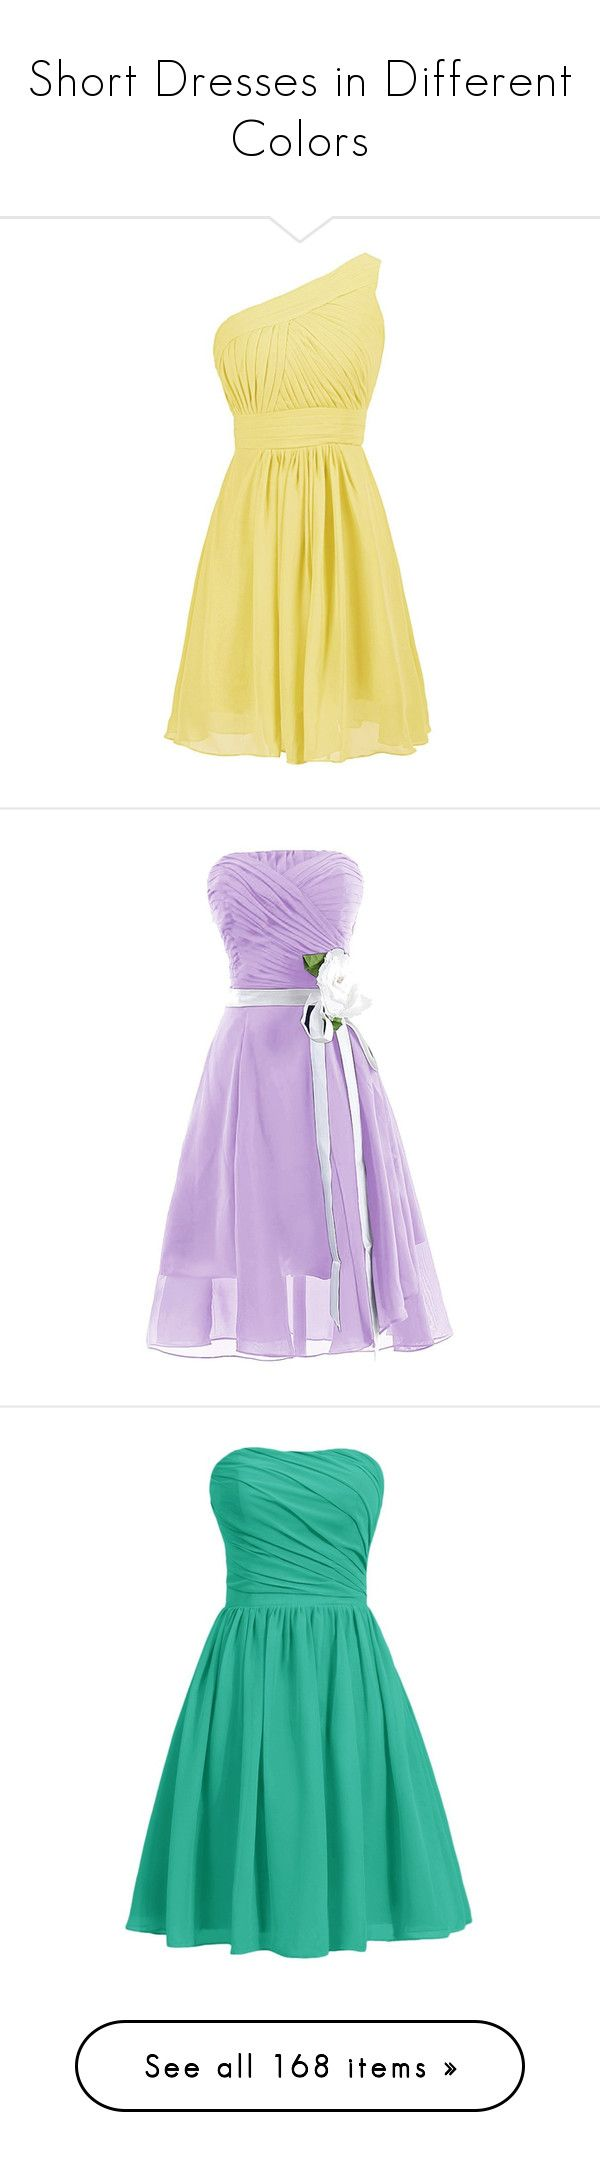 """""""Short Dresses in Different Colors"""" by marielw97 ❤ liked on Polyvore featuring dresses, lullabies, beige cocktail dress, chiffon bridesmaid dresses, bridesmaid cocktail dresses, beige bridesmaid dresses, beige dress, short dresses, homecoming dresses and purple prom dresses"""